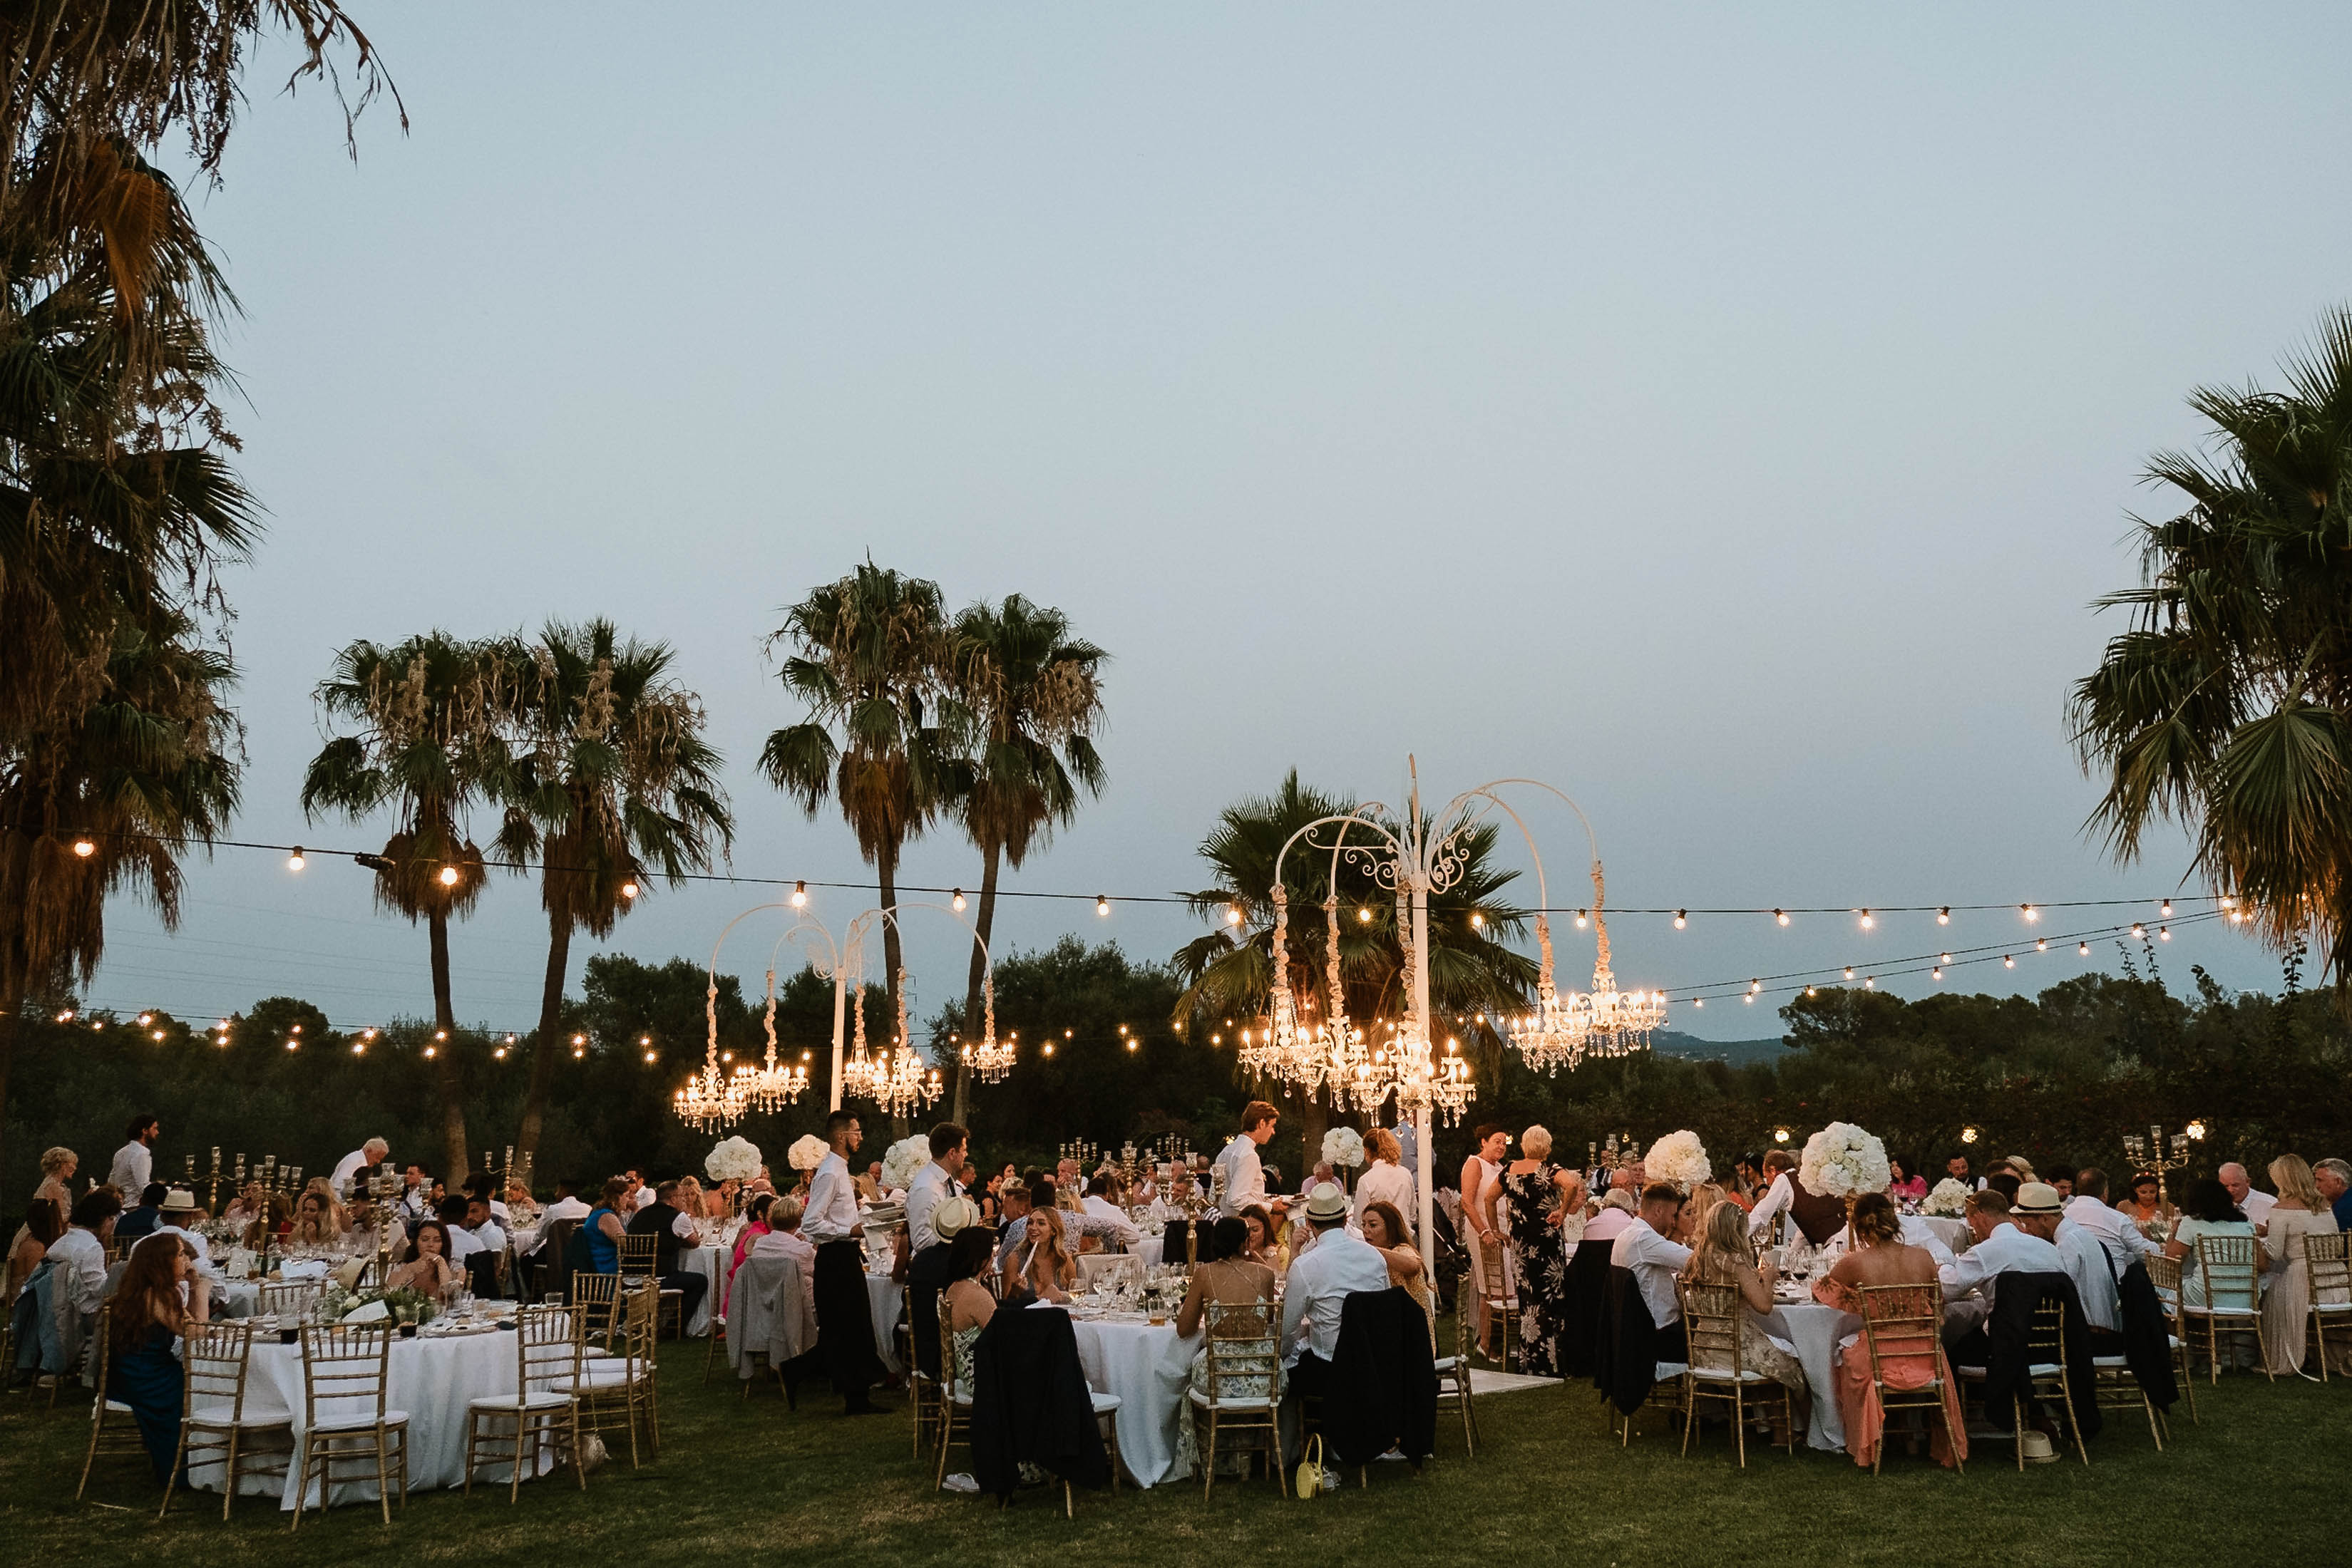 Illuminations in the gardens as the sun sets on the bridal party